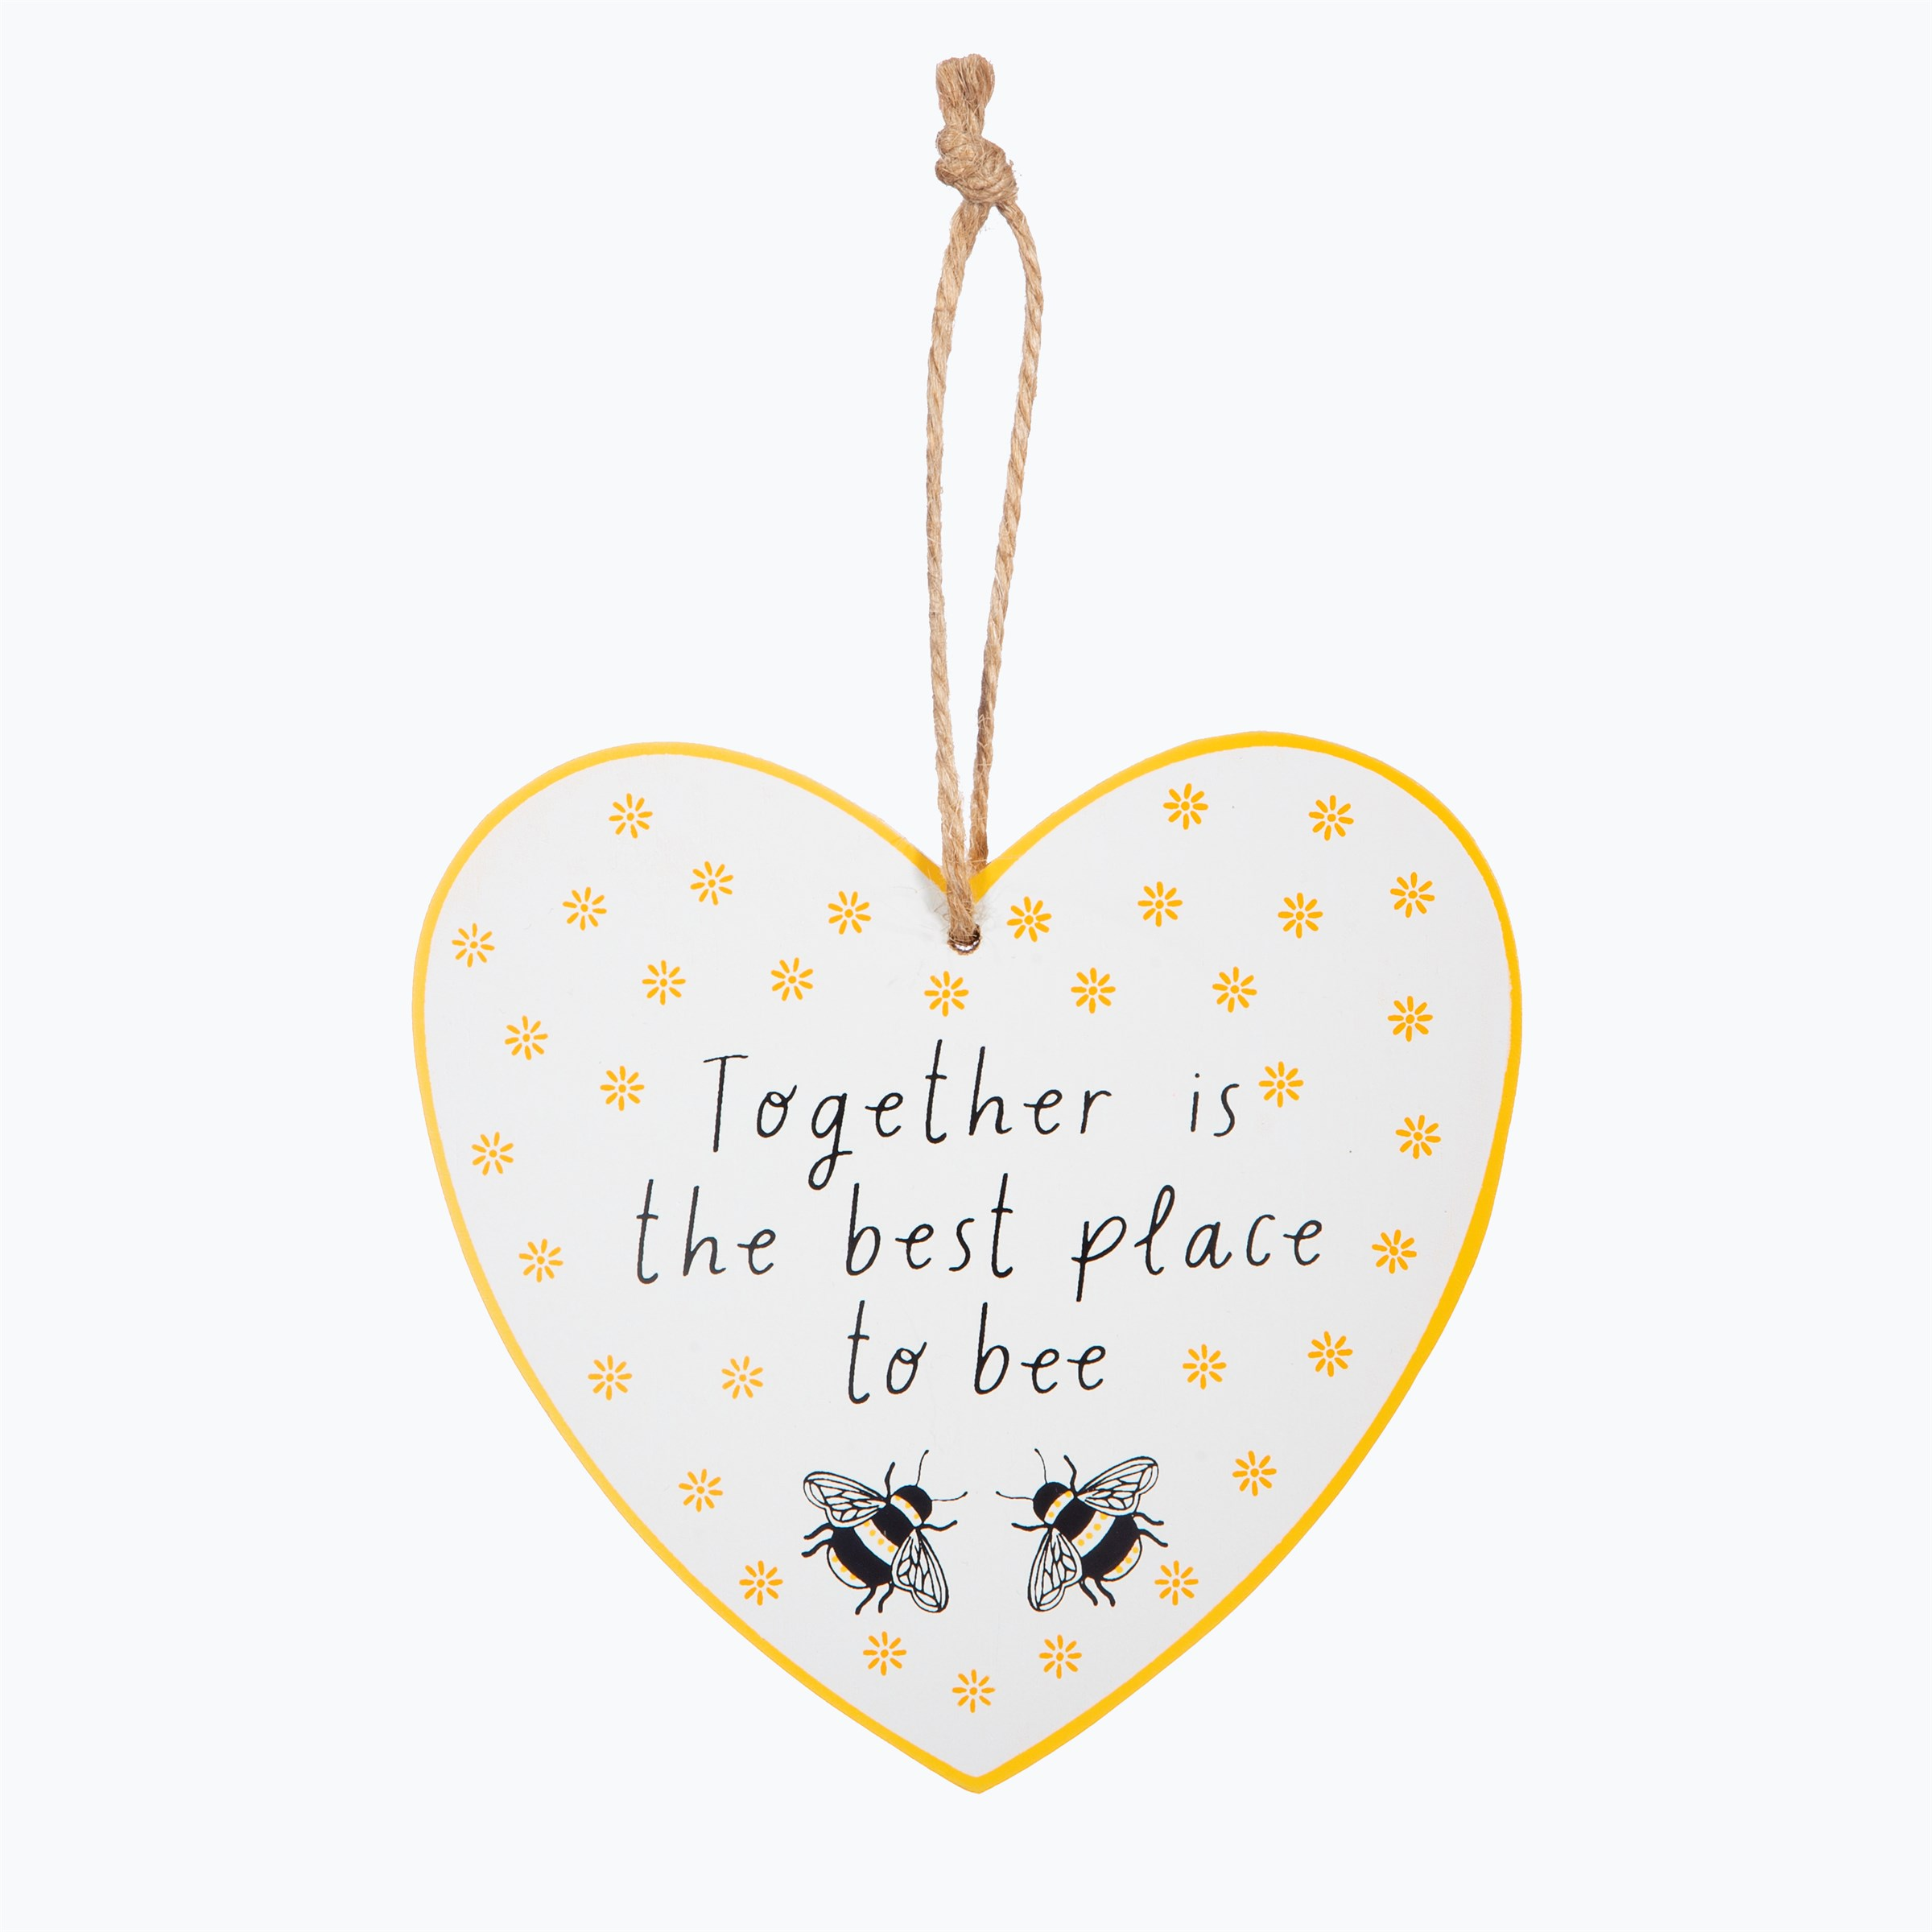 Together is the best place to bee. Bumblebee hanging heart